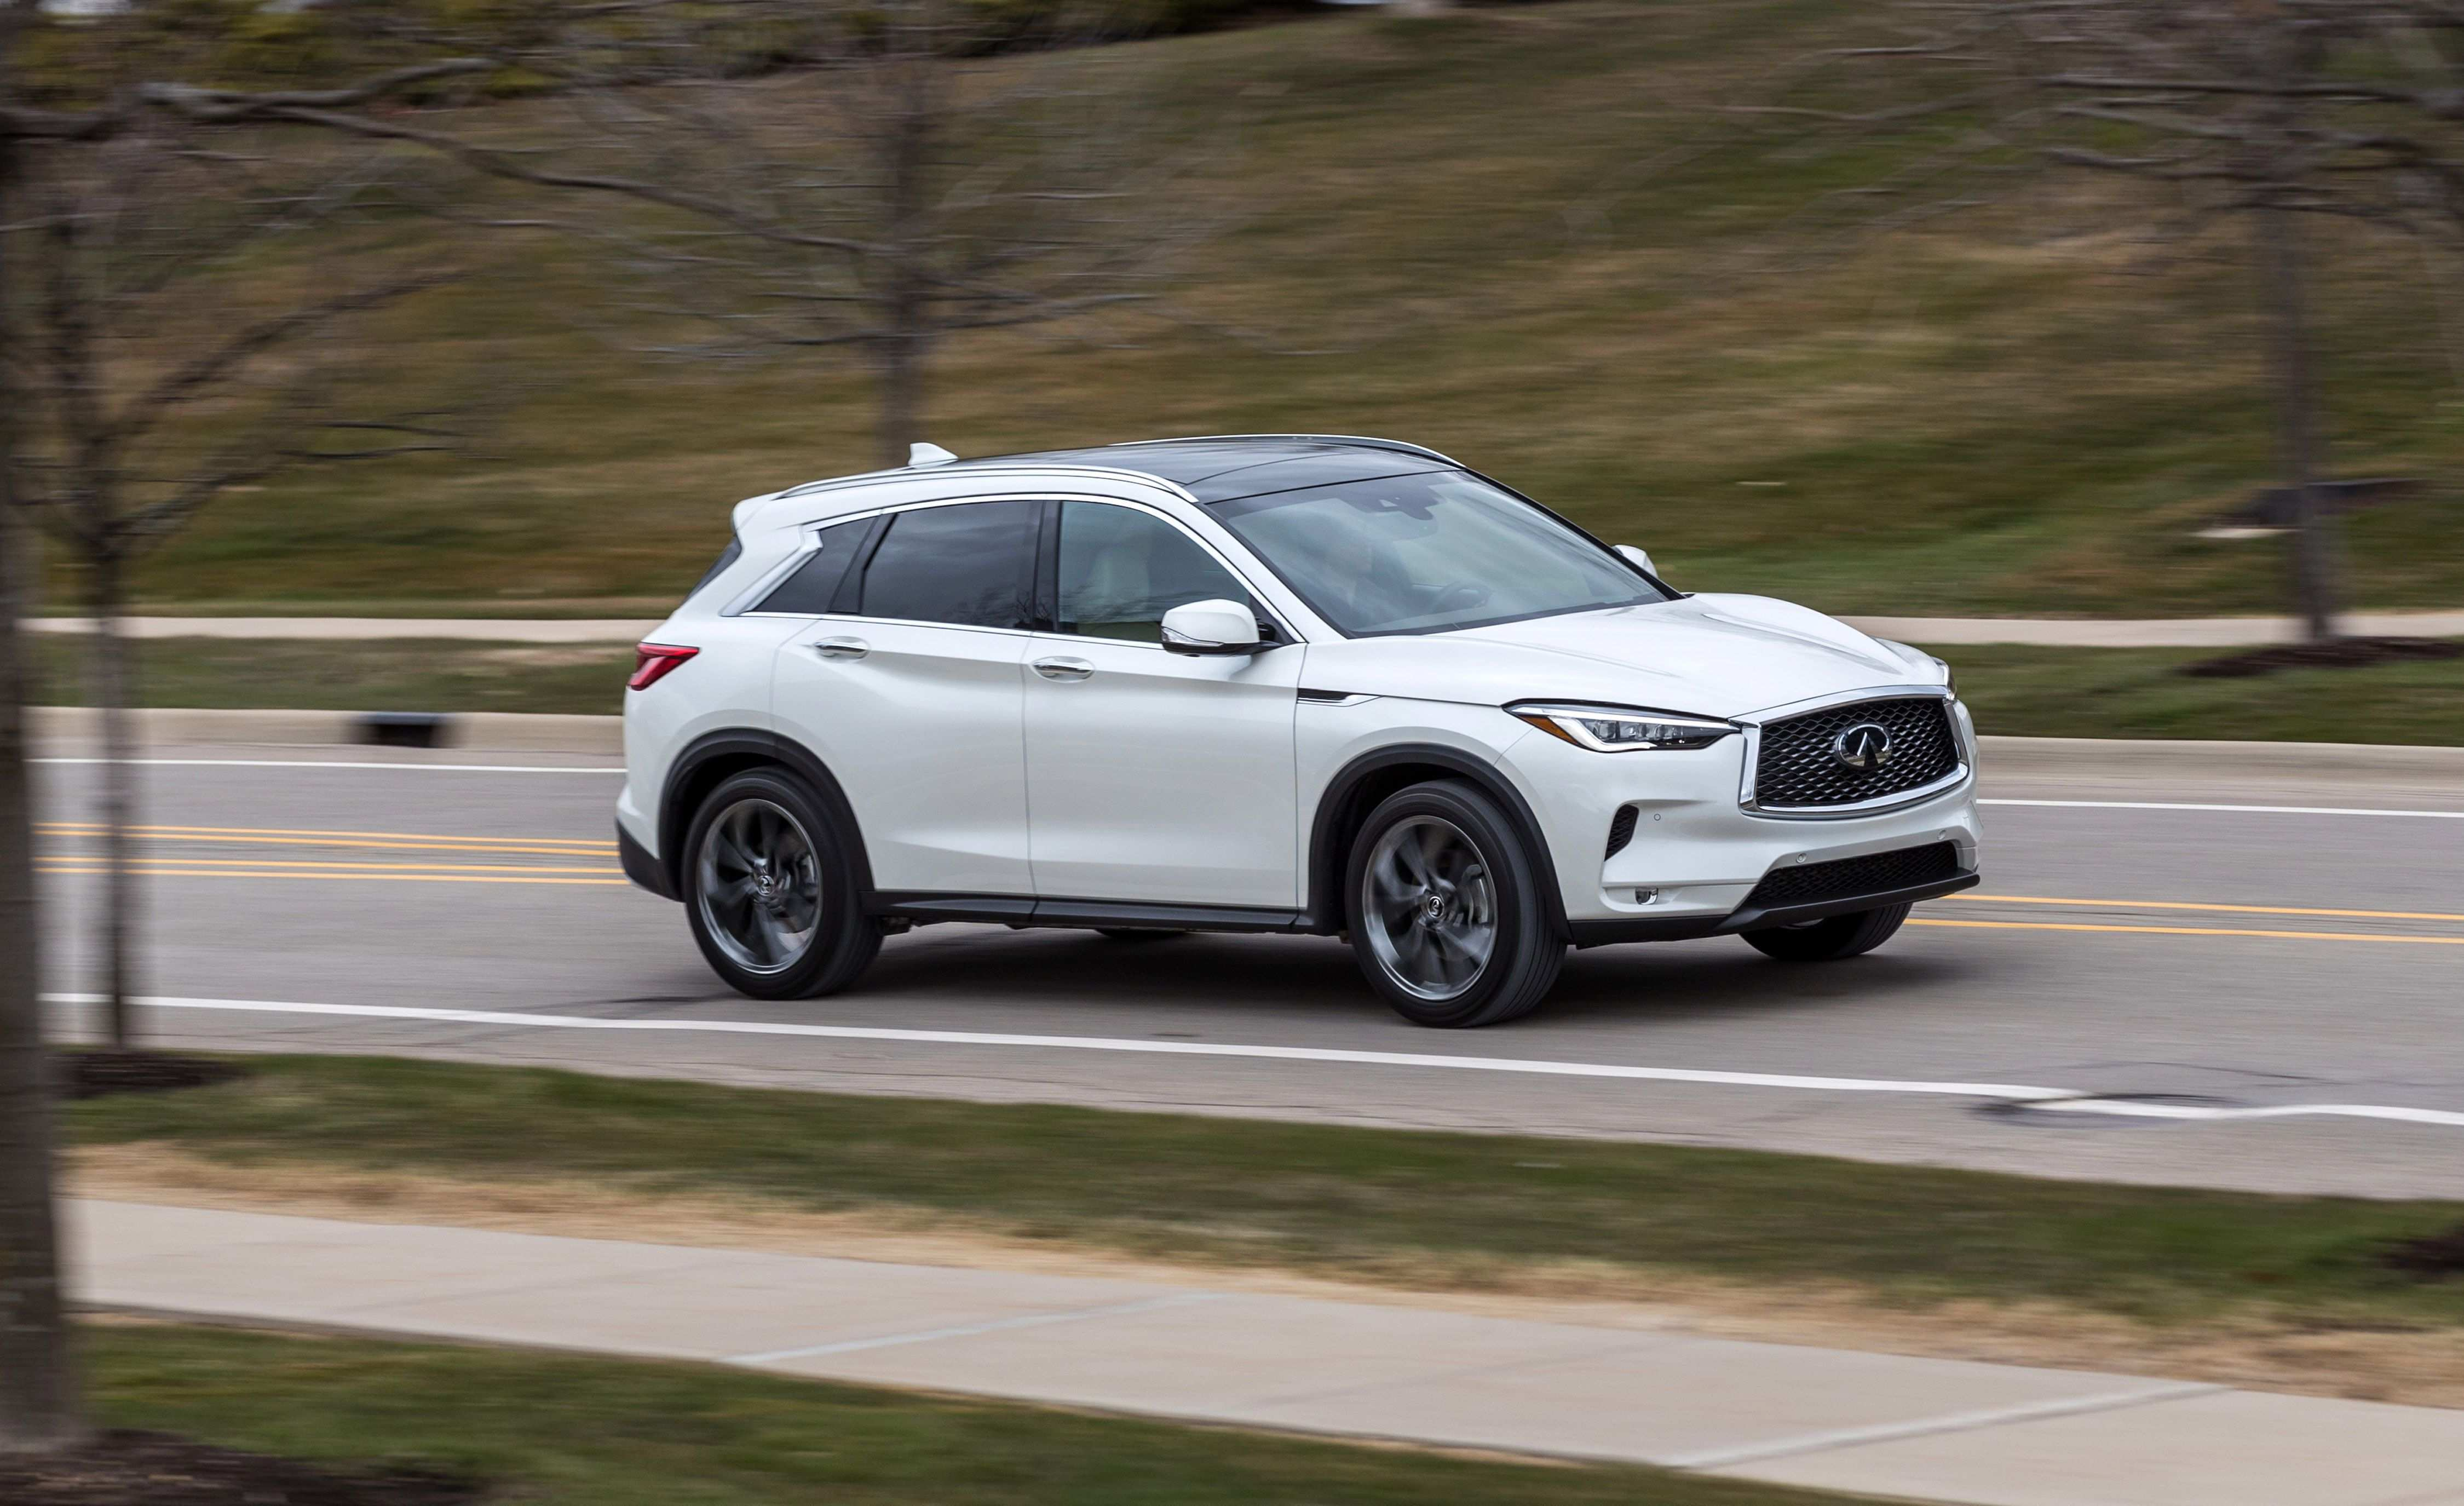 79 Great 2020 Infiniti Qx50 Wiki Specs for 2020 Infiniti Qx50 Wiki